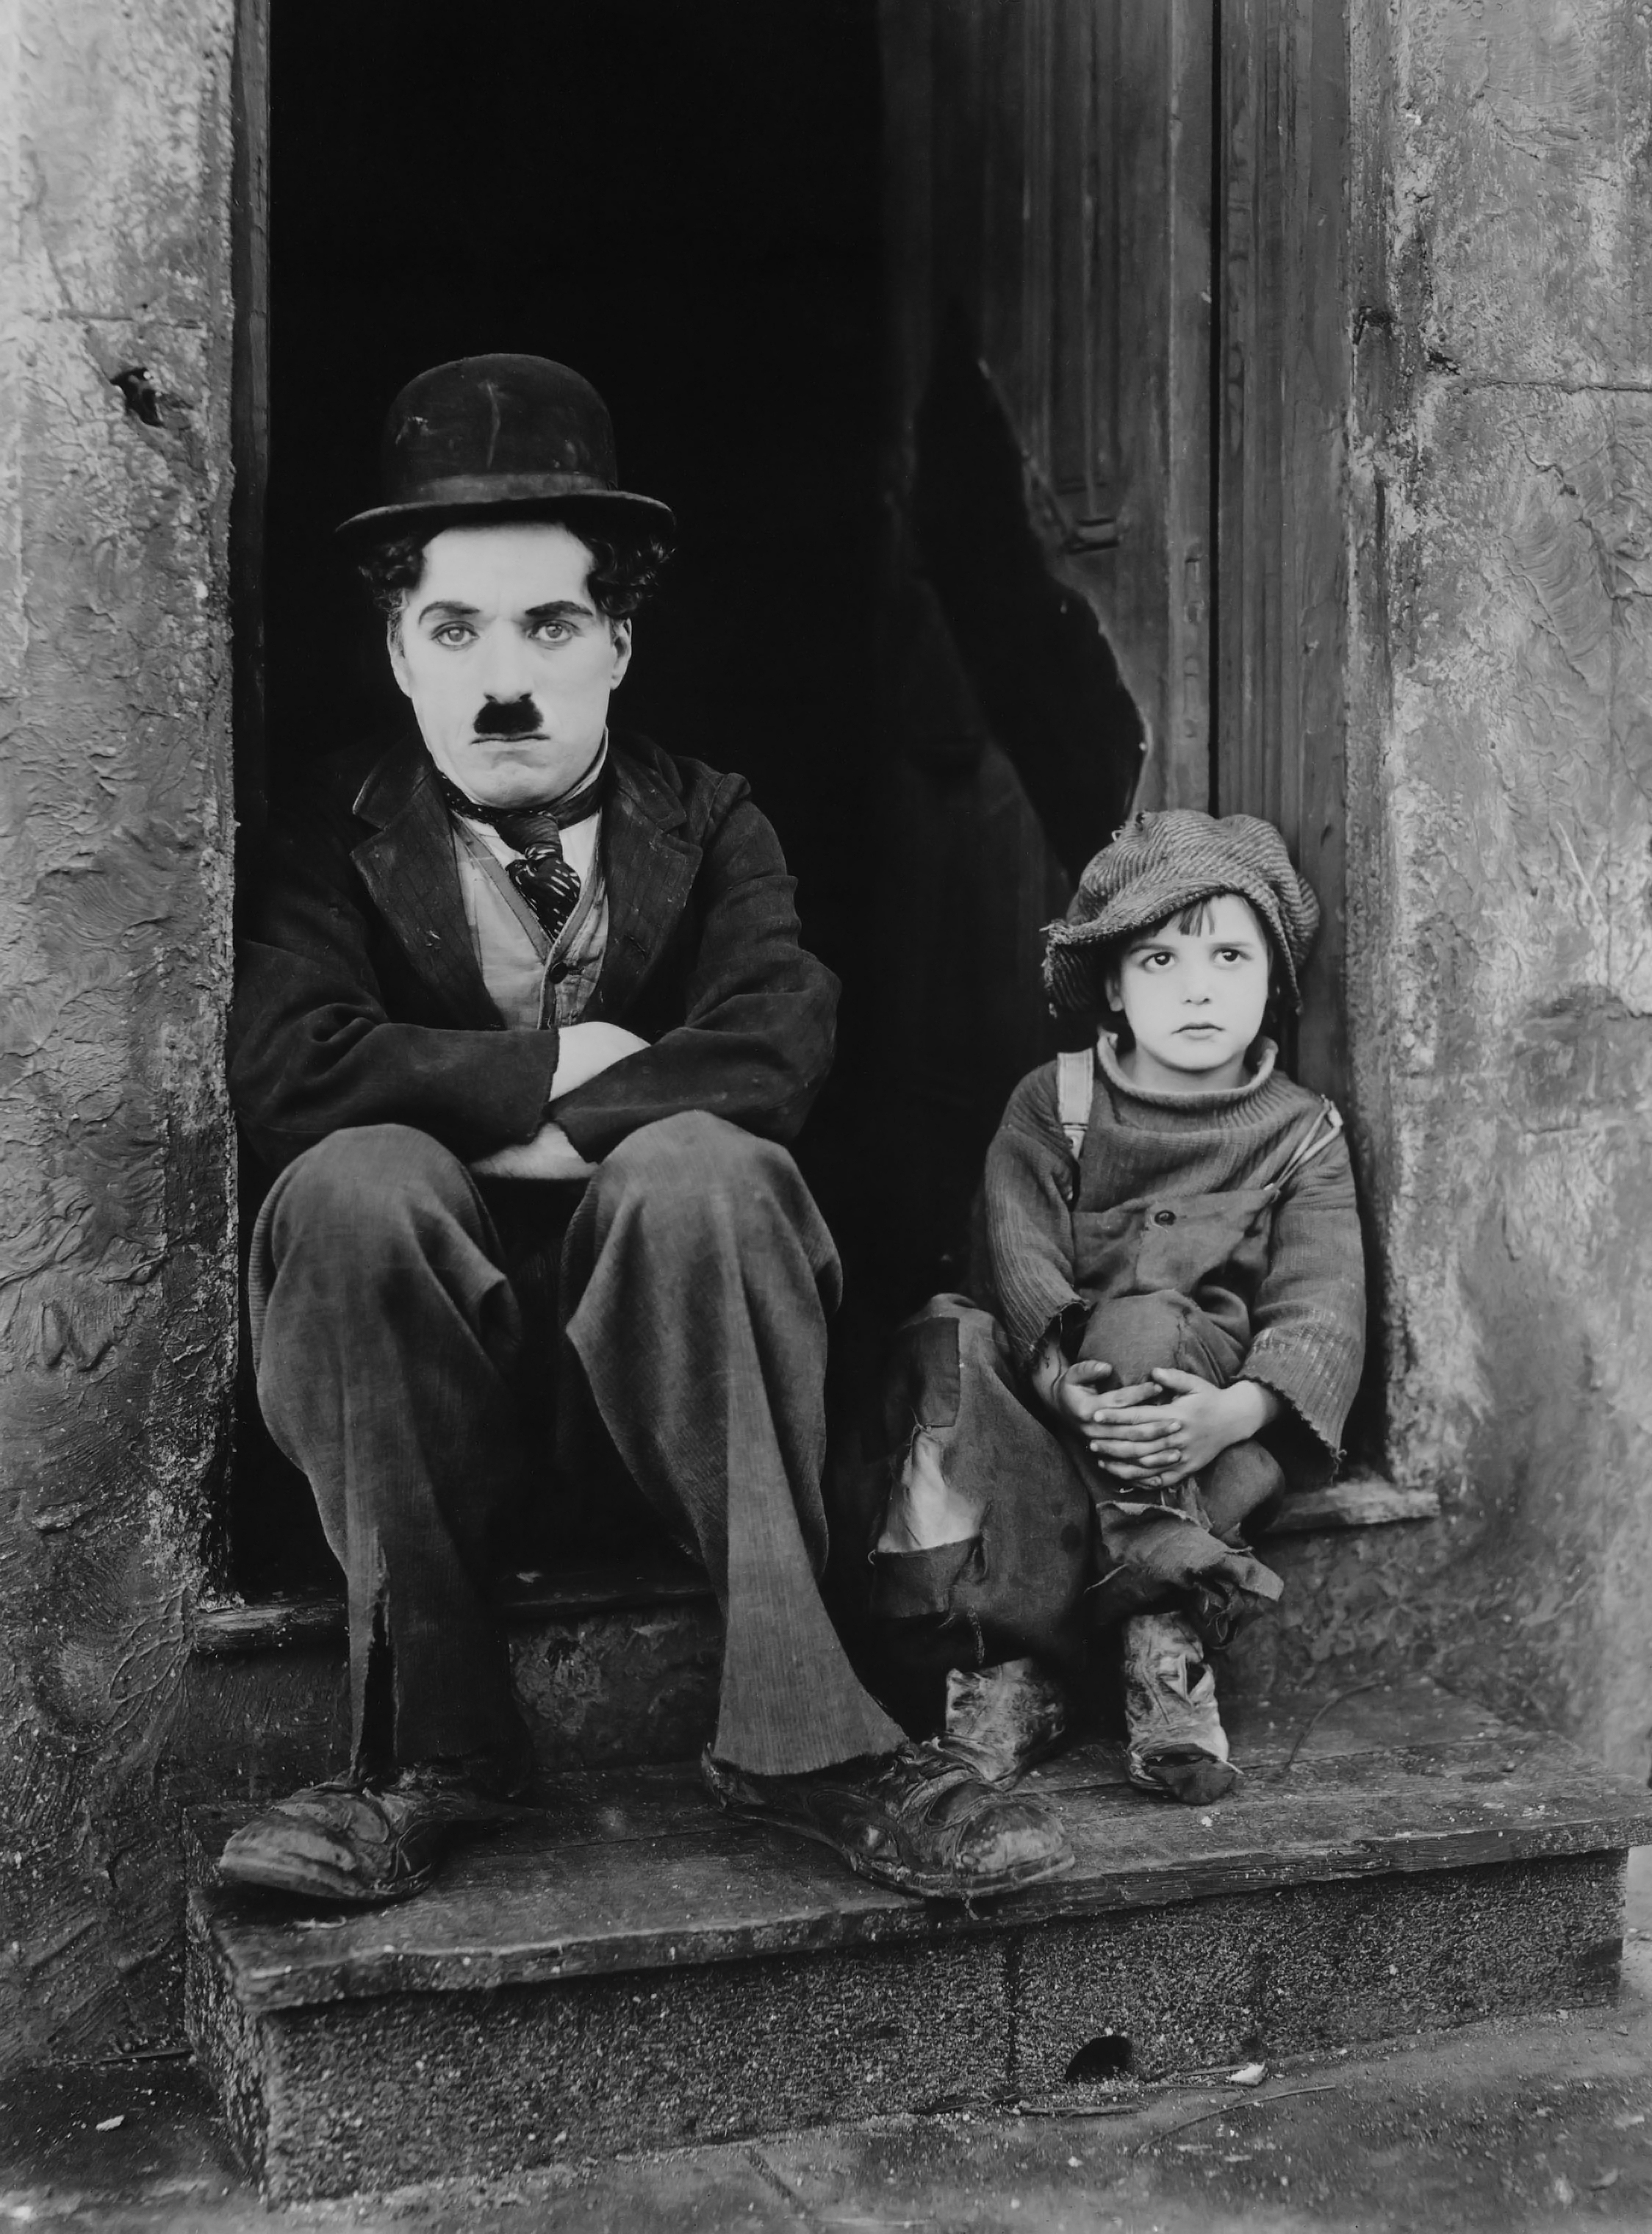 http://lounge.obviousmag.org/tanto_mar/Chaplin_The_Kid_edit.jpg